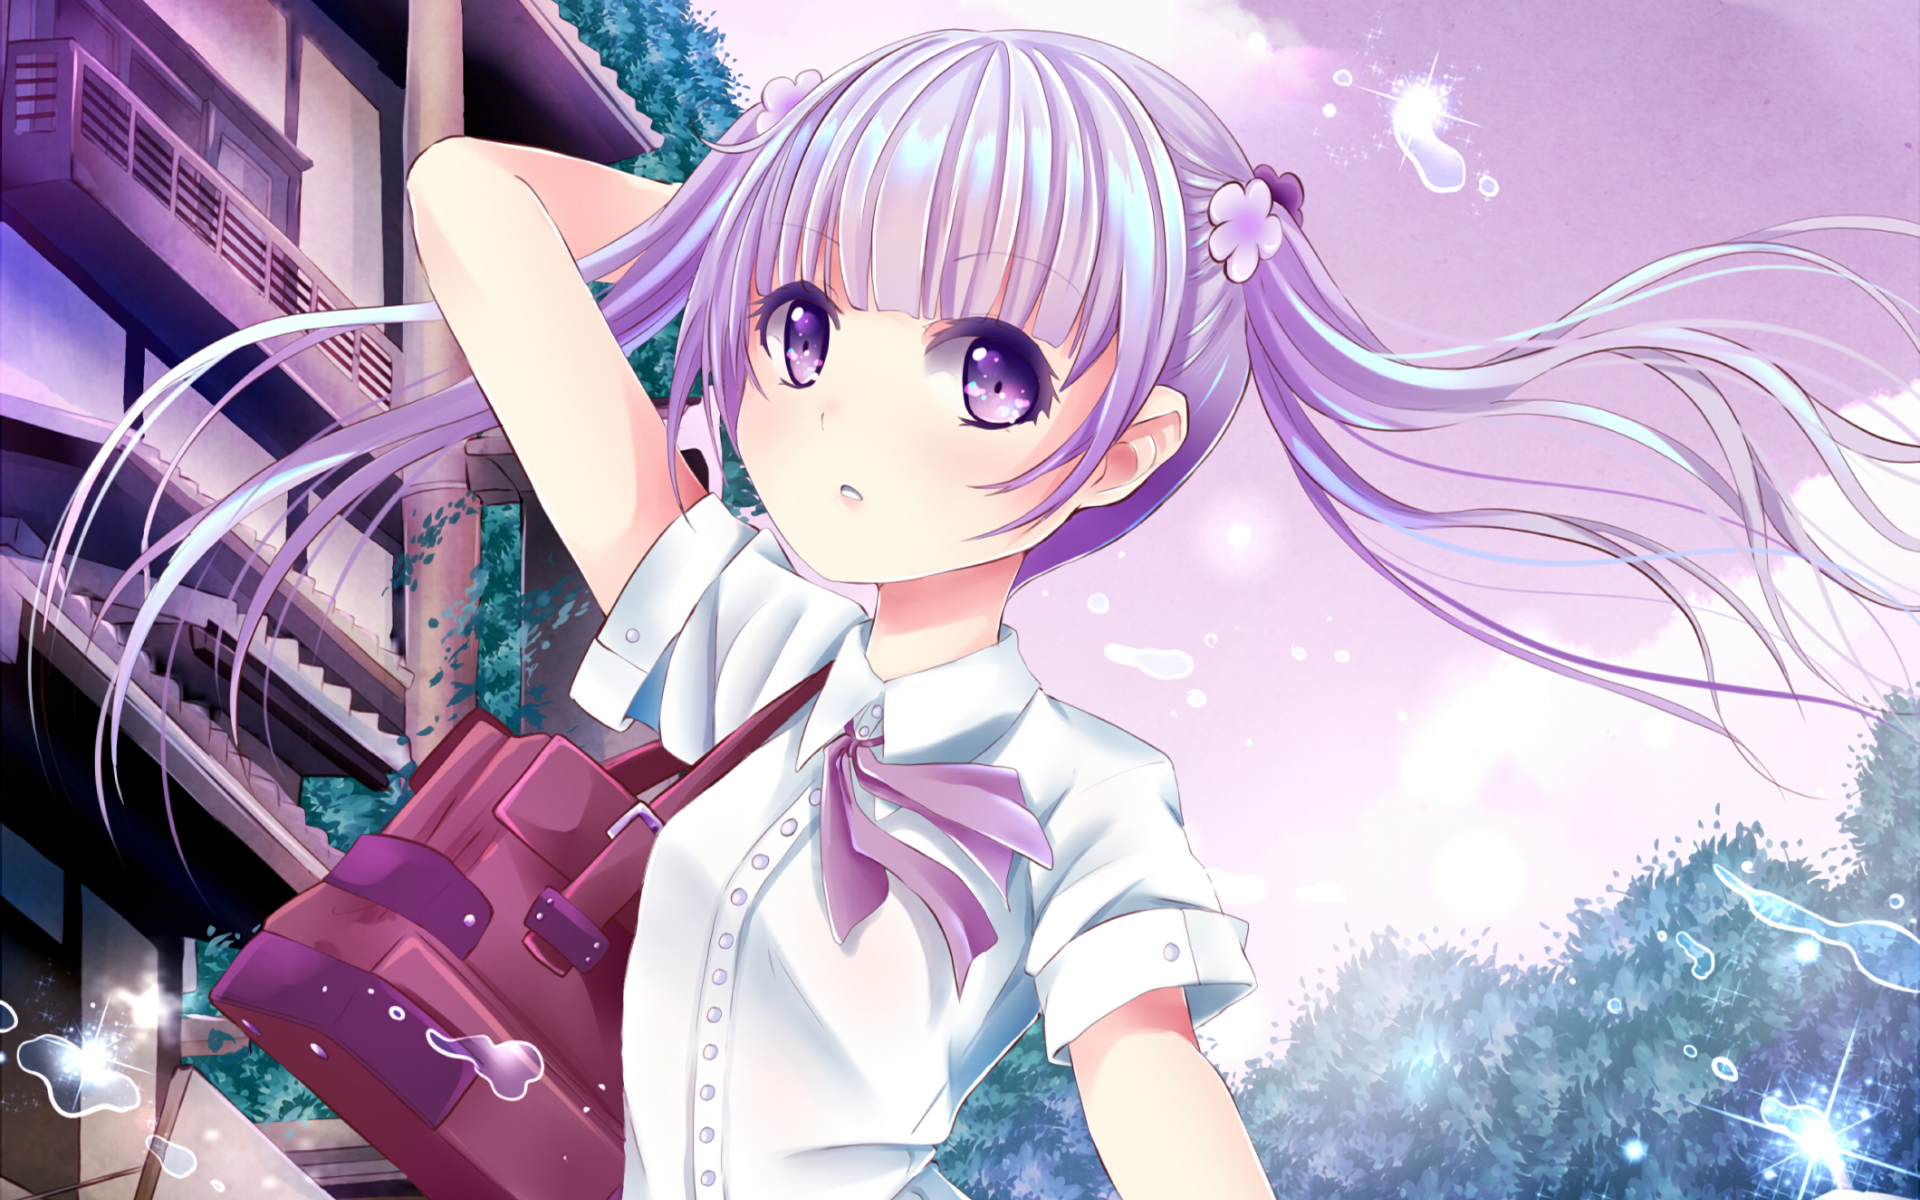 NEWGAME! Full HD Wallpaper and Background Image  1920x1200  ID:718295